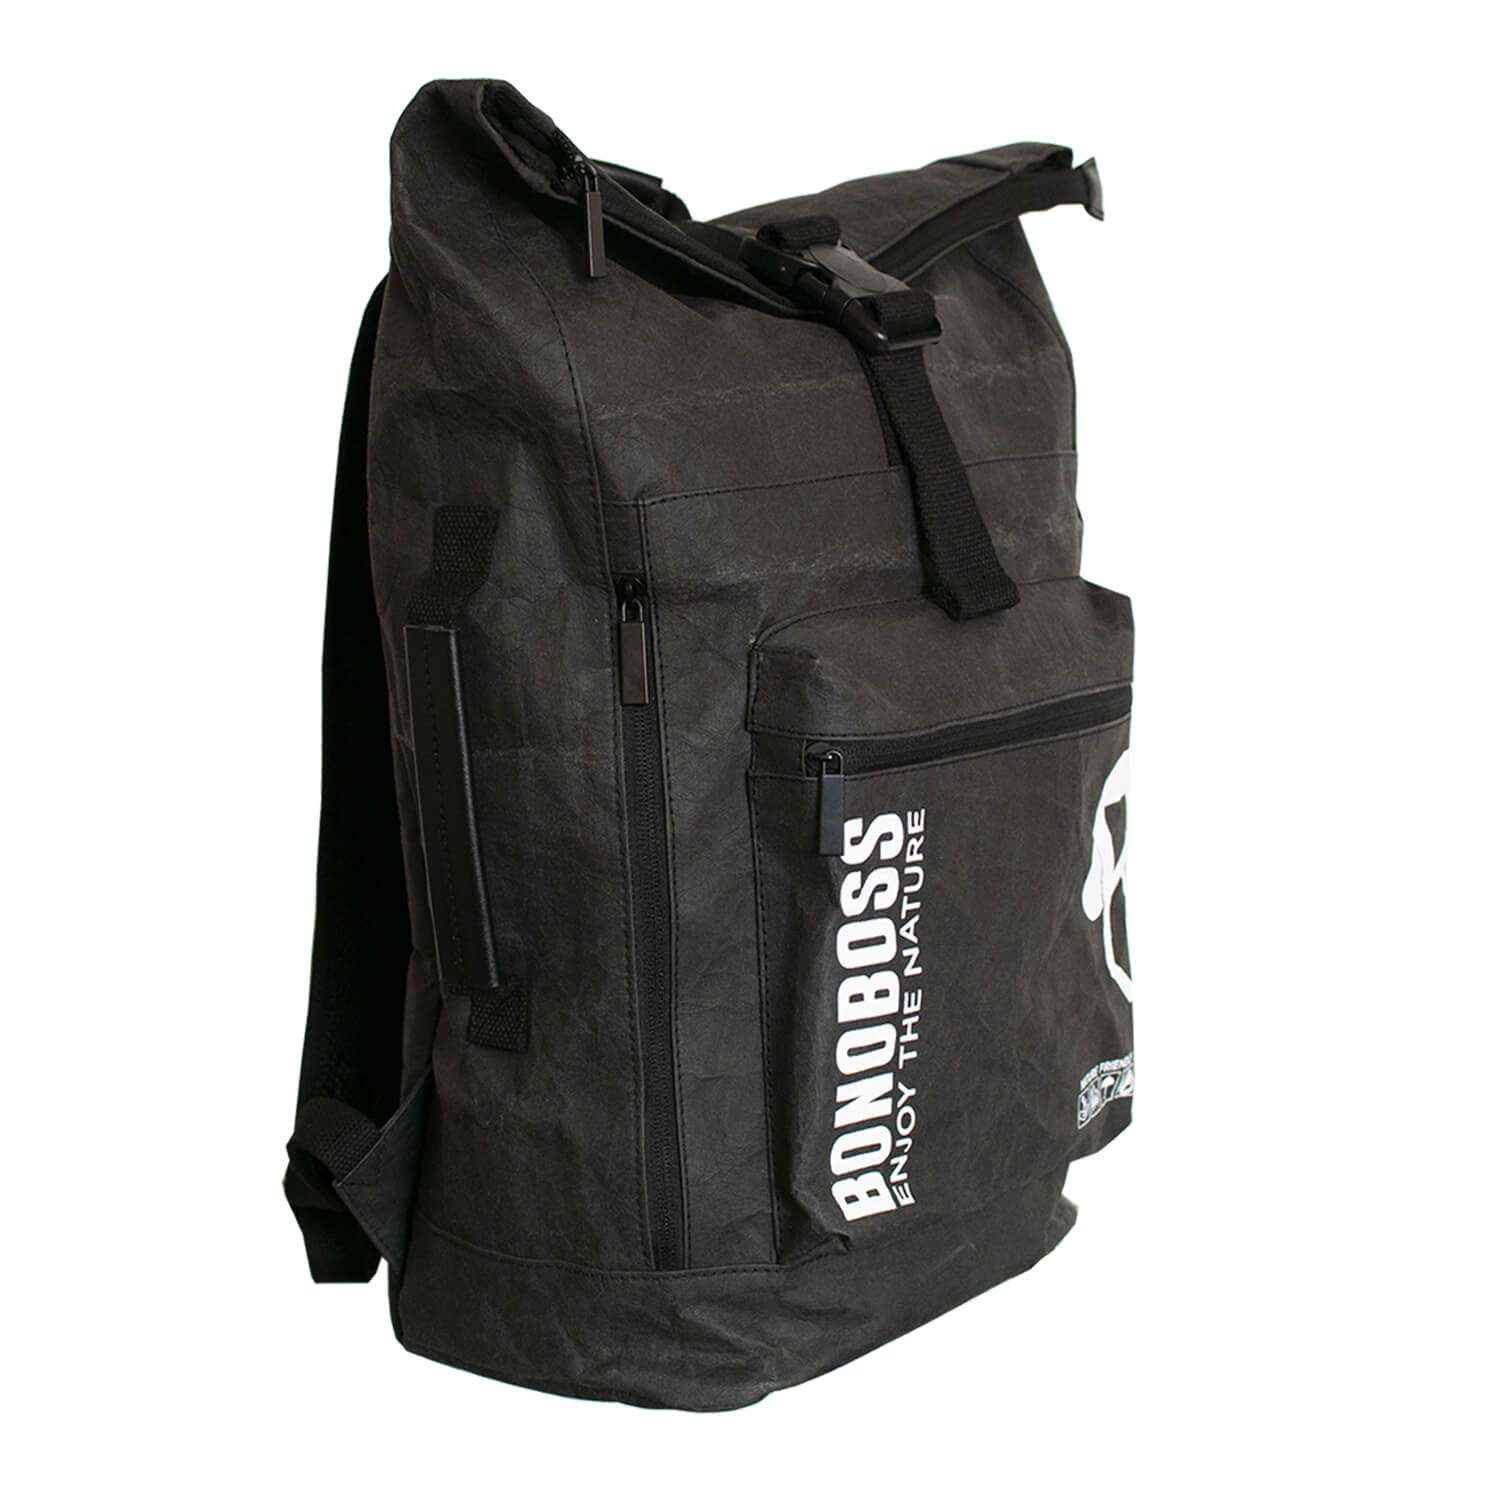 Mochila Papel Sustentable Mountain Negra